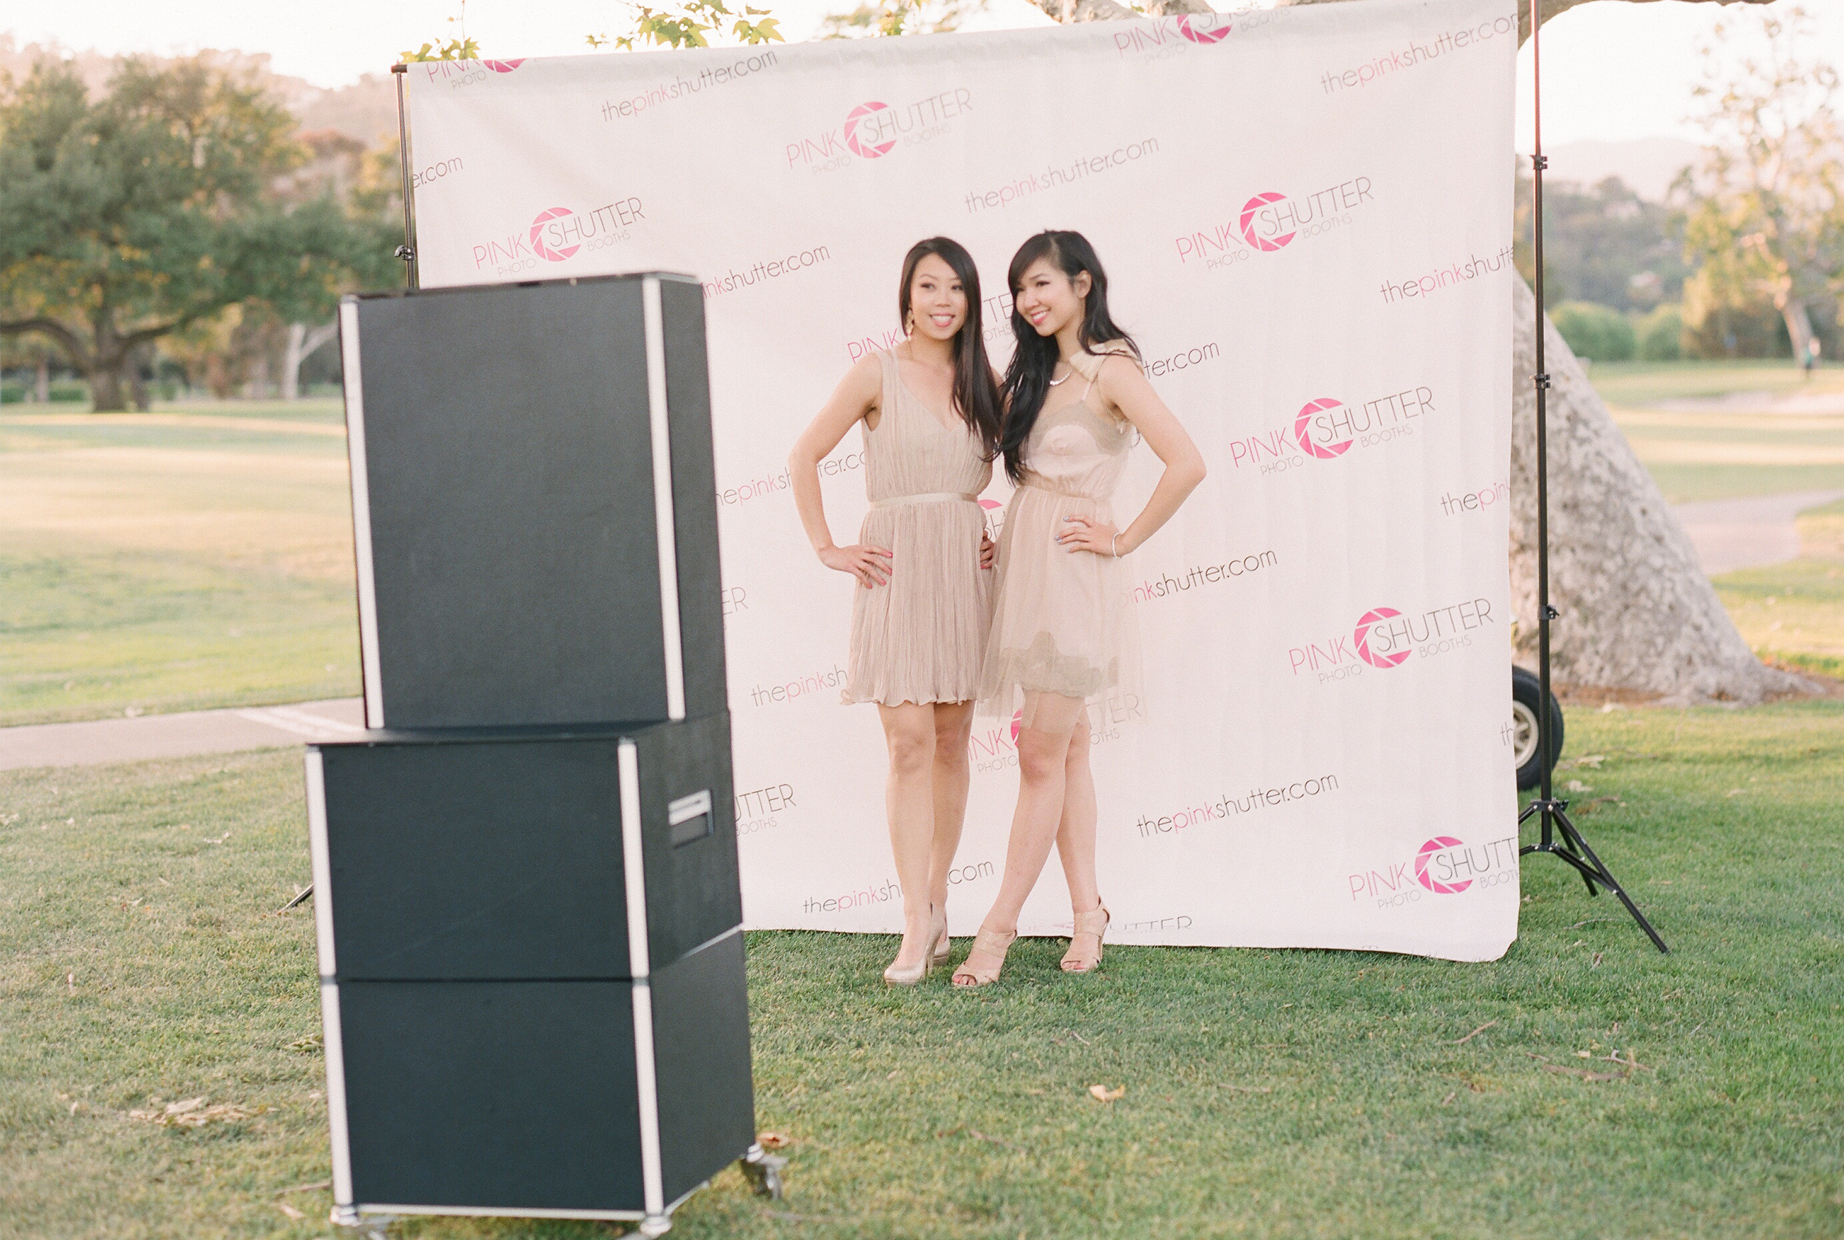 Use our Step & Repeat Backdrop and Open Booth Kiosk